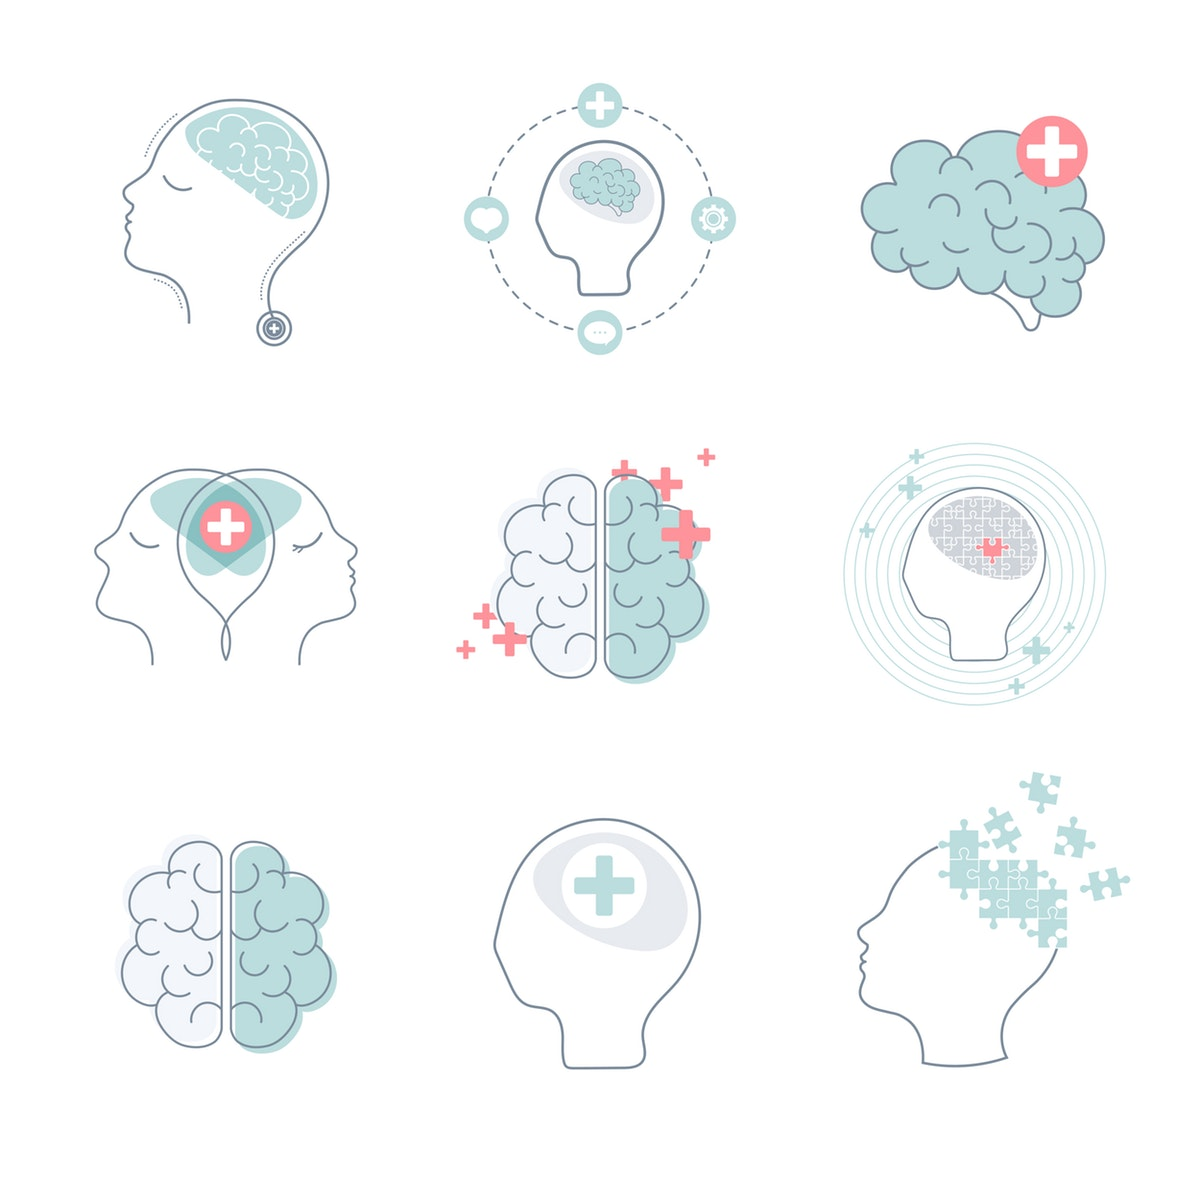 Artist illustrations of the brain to represent counselor and counseling